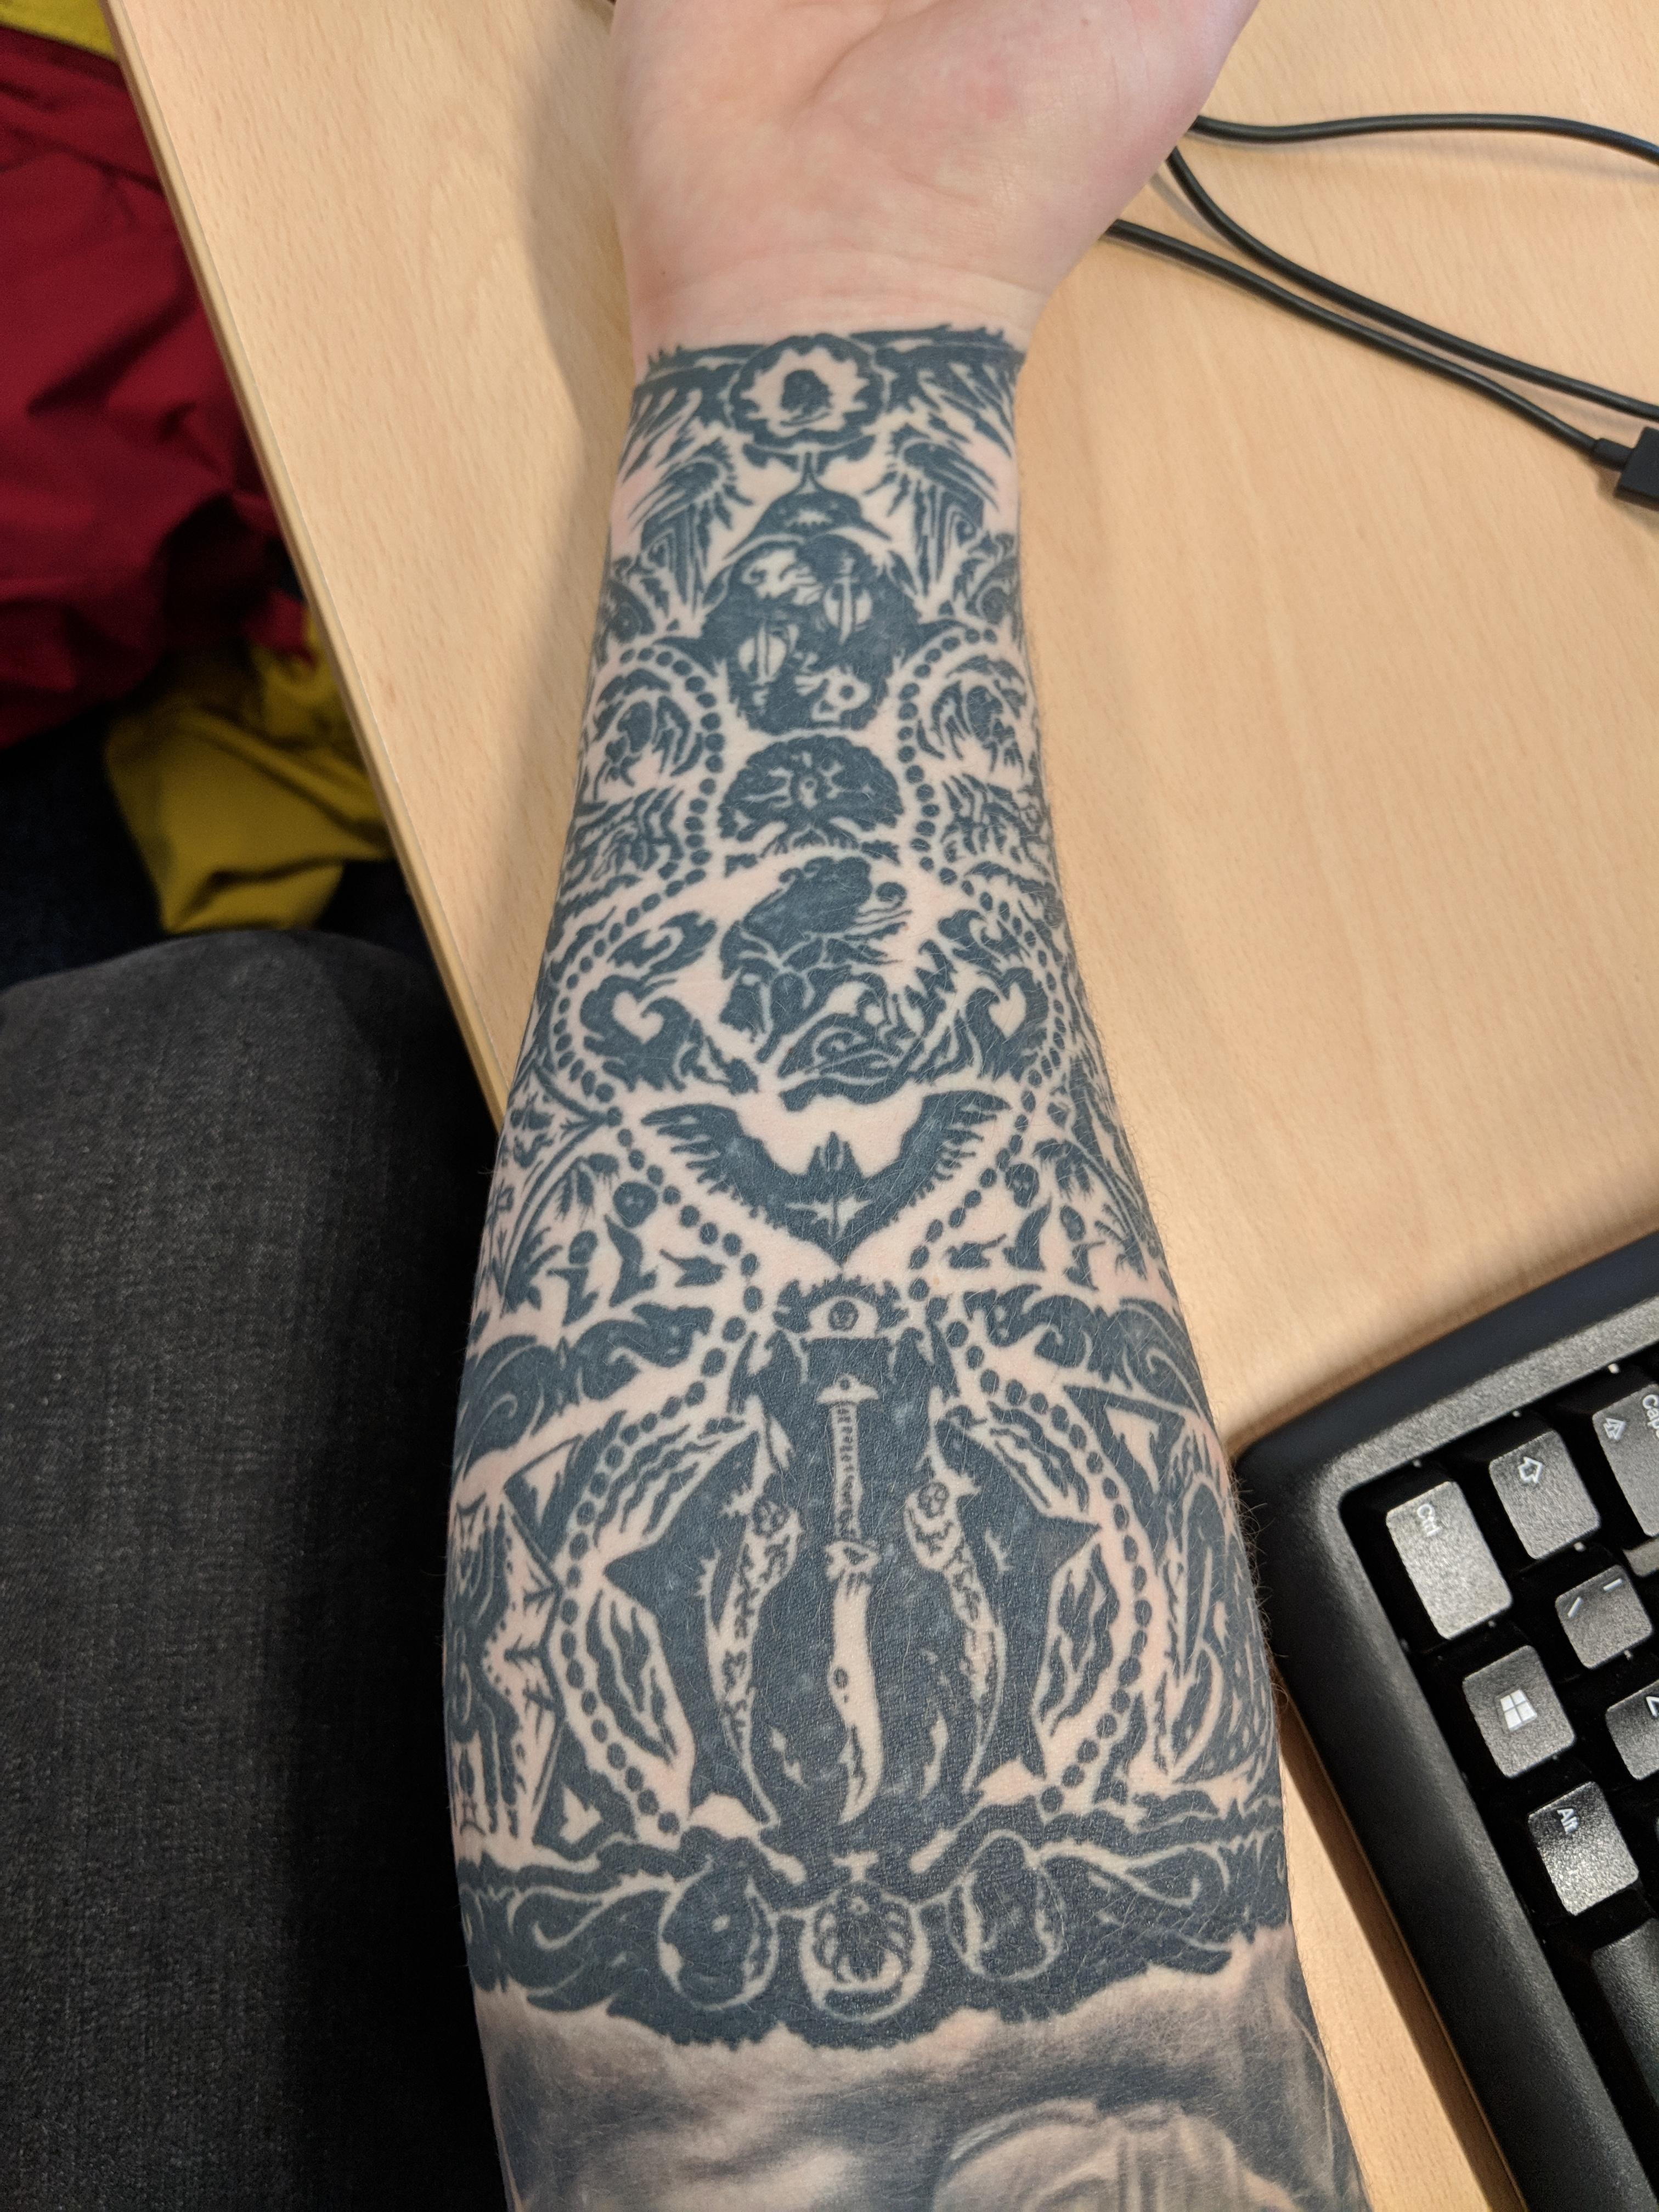 Far Cry 3 Forearm Tattoo Done By Ant Ross At The Caged Fox Ideas And Designs